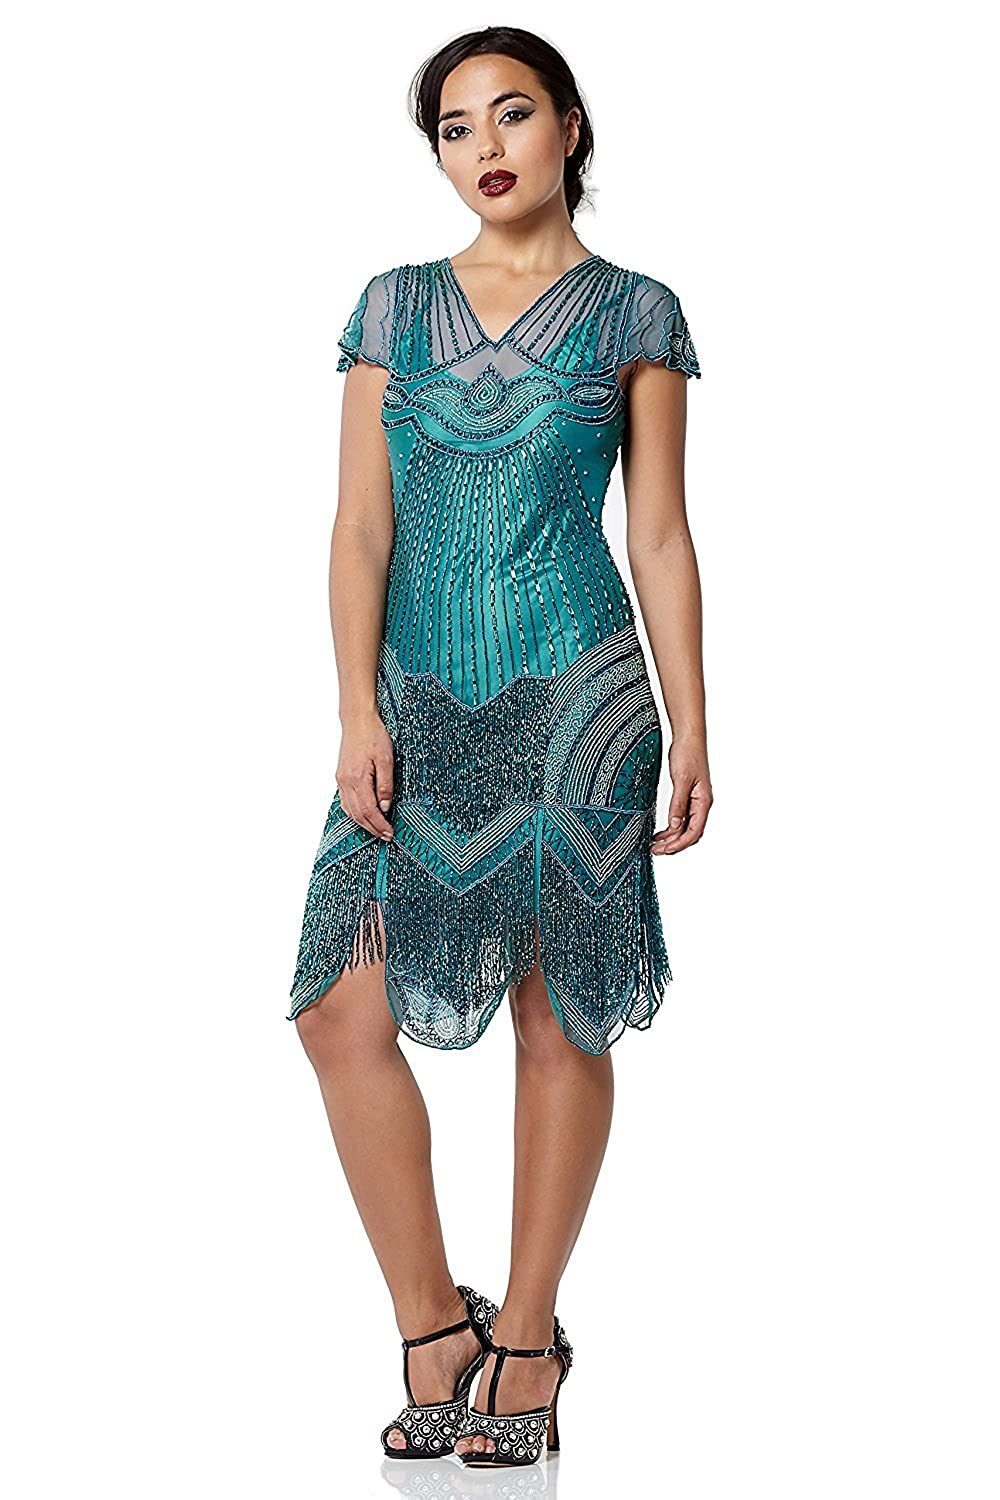 1920s Style Dresses, Flapper Dresses Beatrice Vintage Inspired Fringe Flapper Dress in Teal £139.00 AT vintagedancer.com